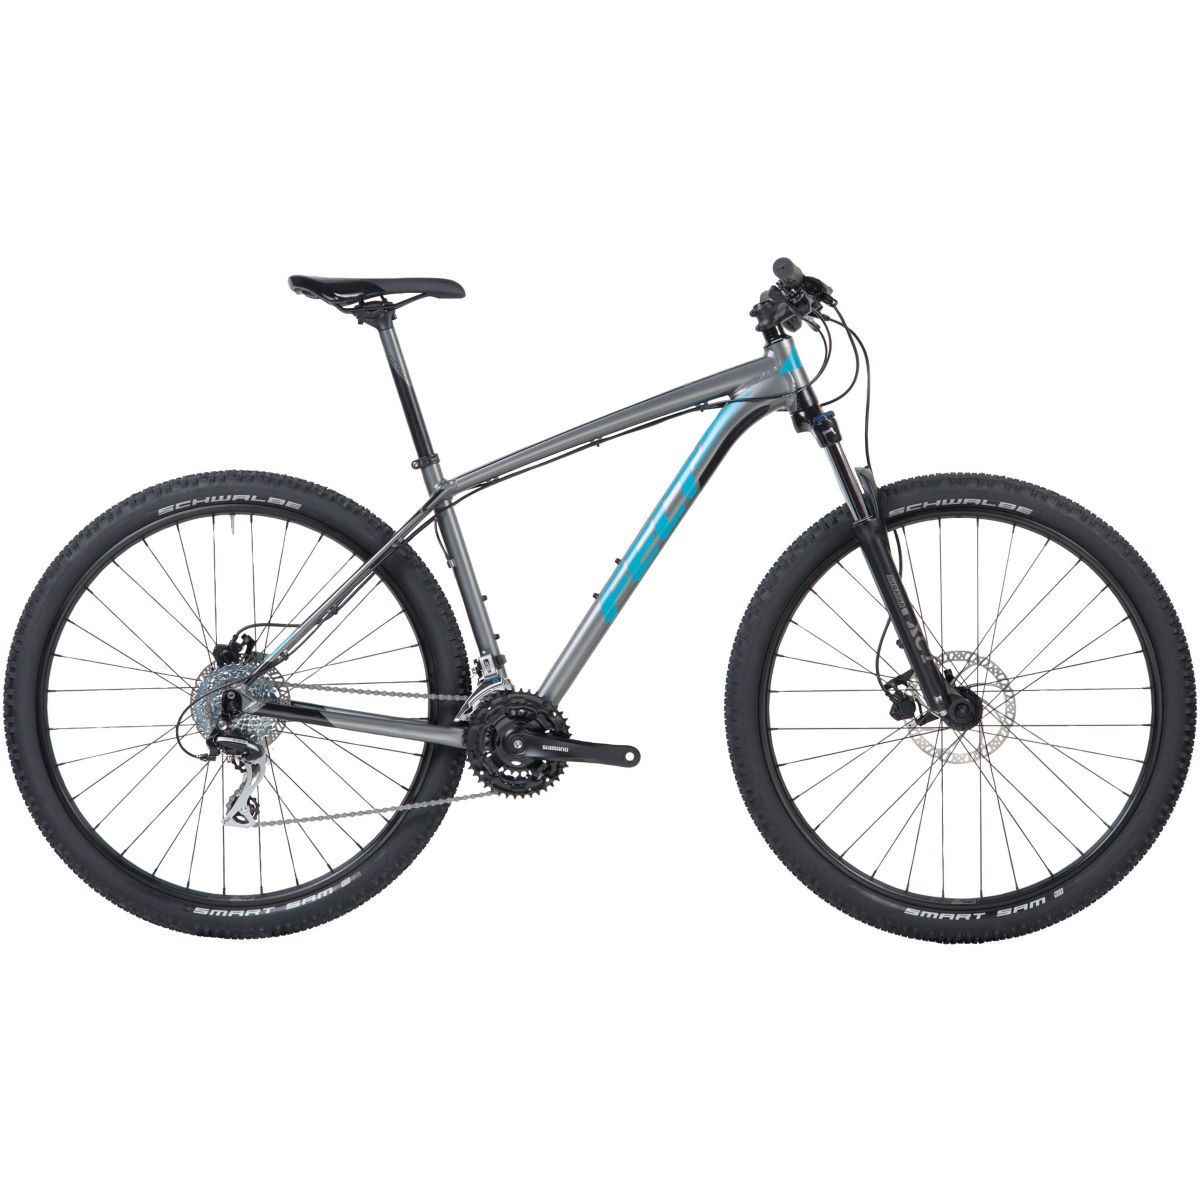 VTT semi-rigide Felt Dispatch 9/80 XC (2018) - 22'' Stock Bike